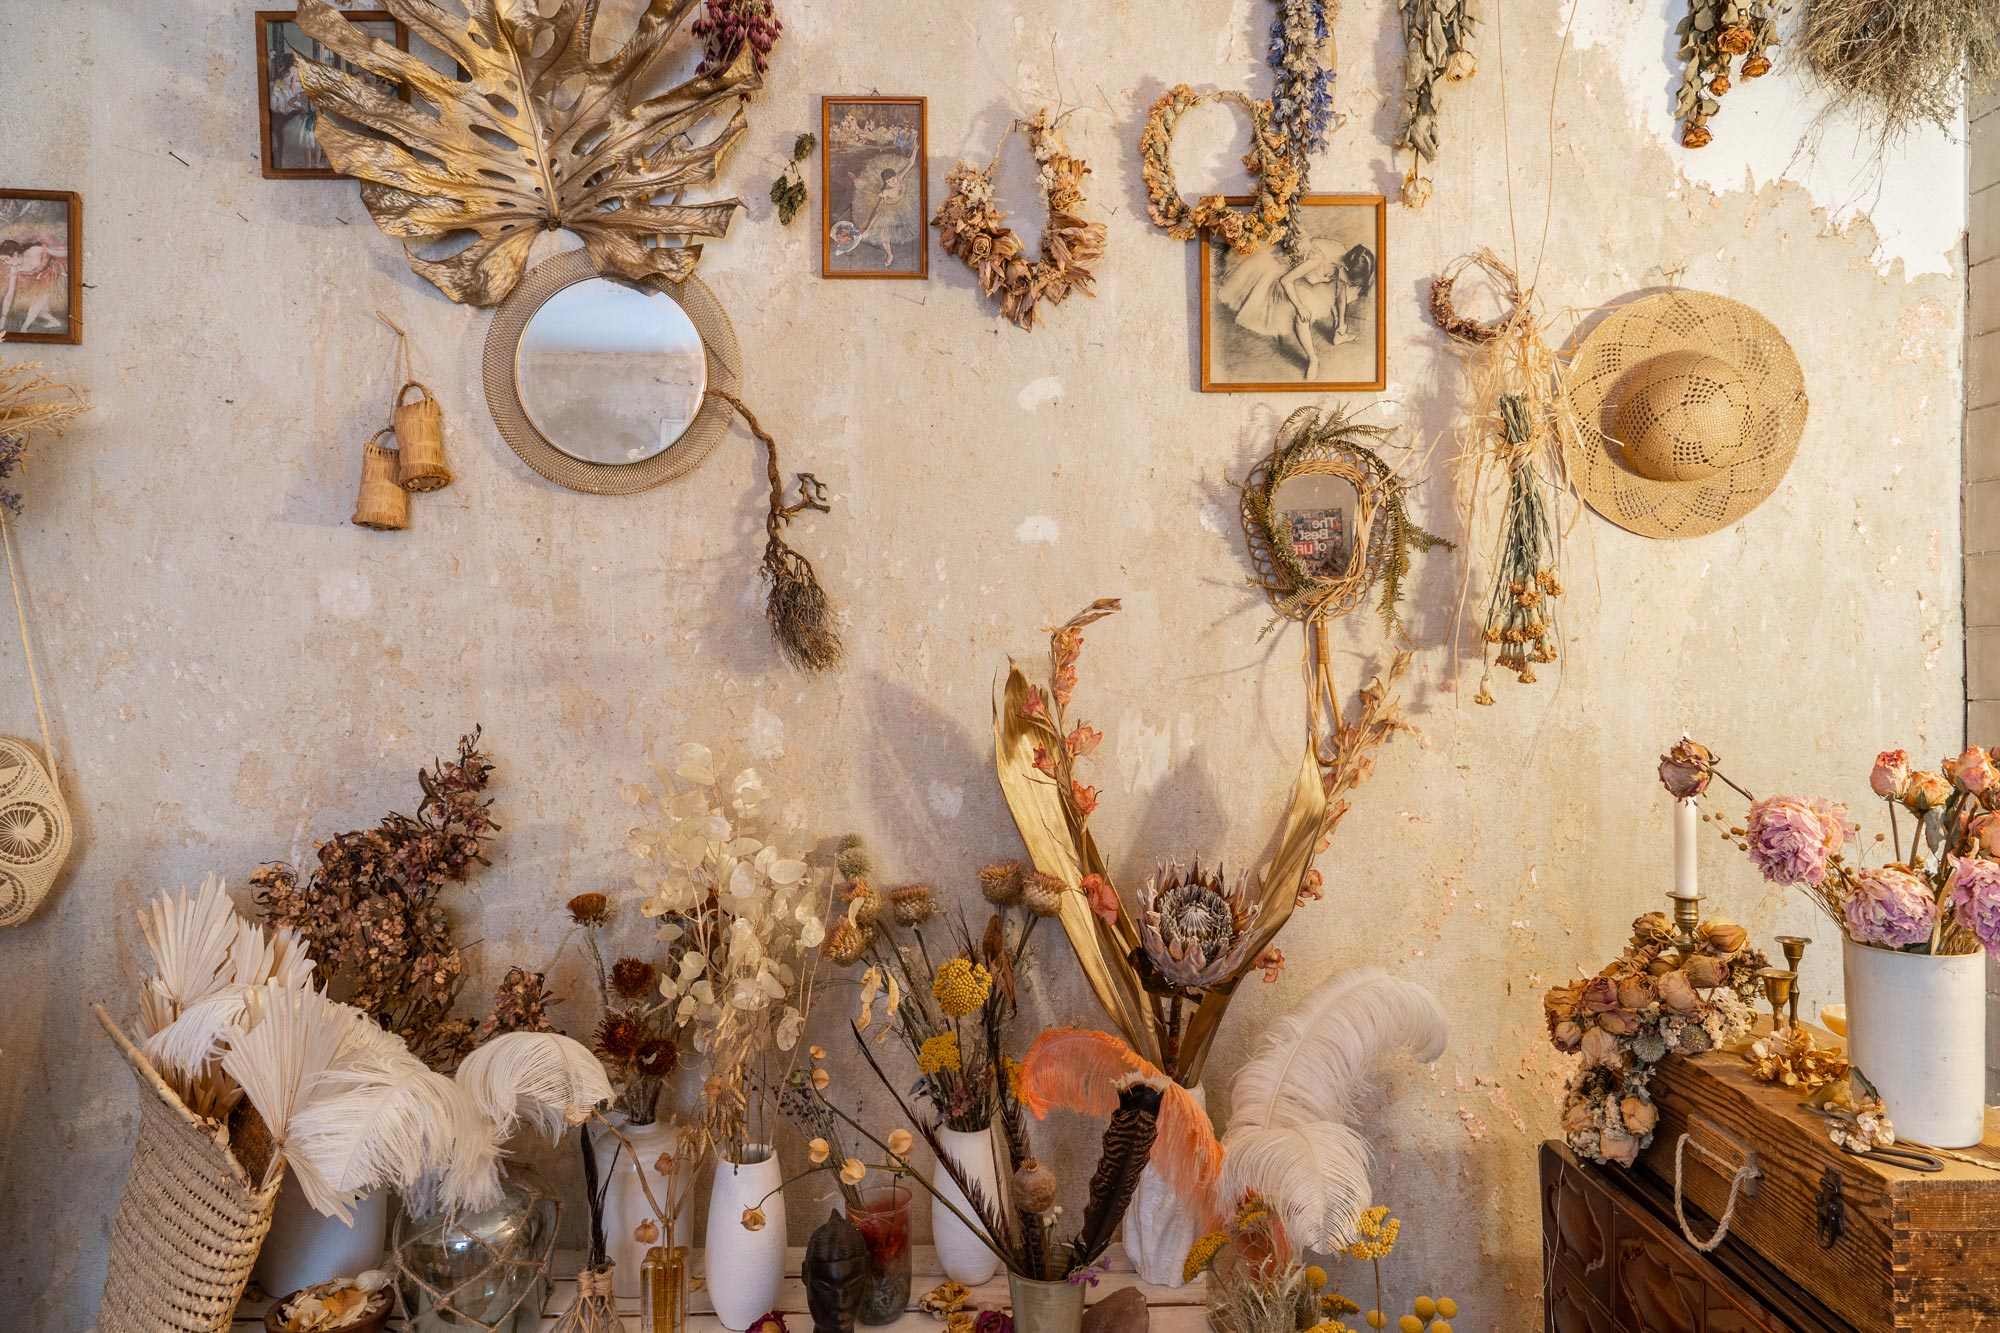 Studio of Botanical Stylist & Creative Director Maggie Coker